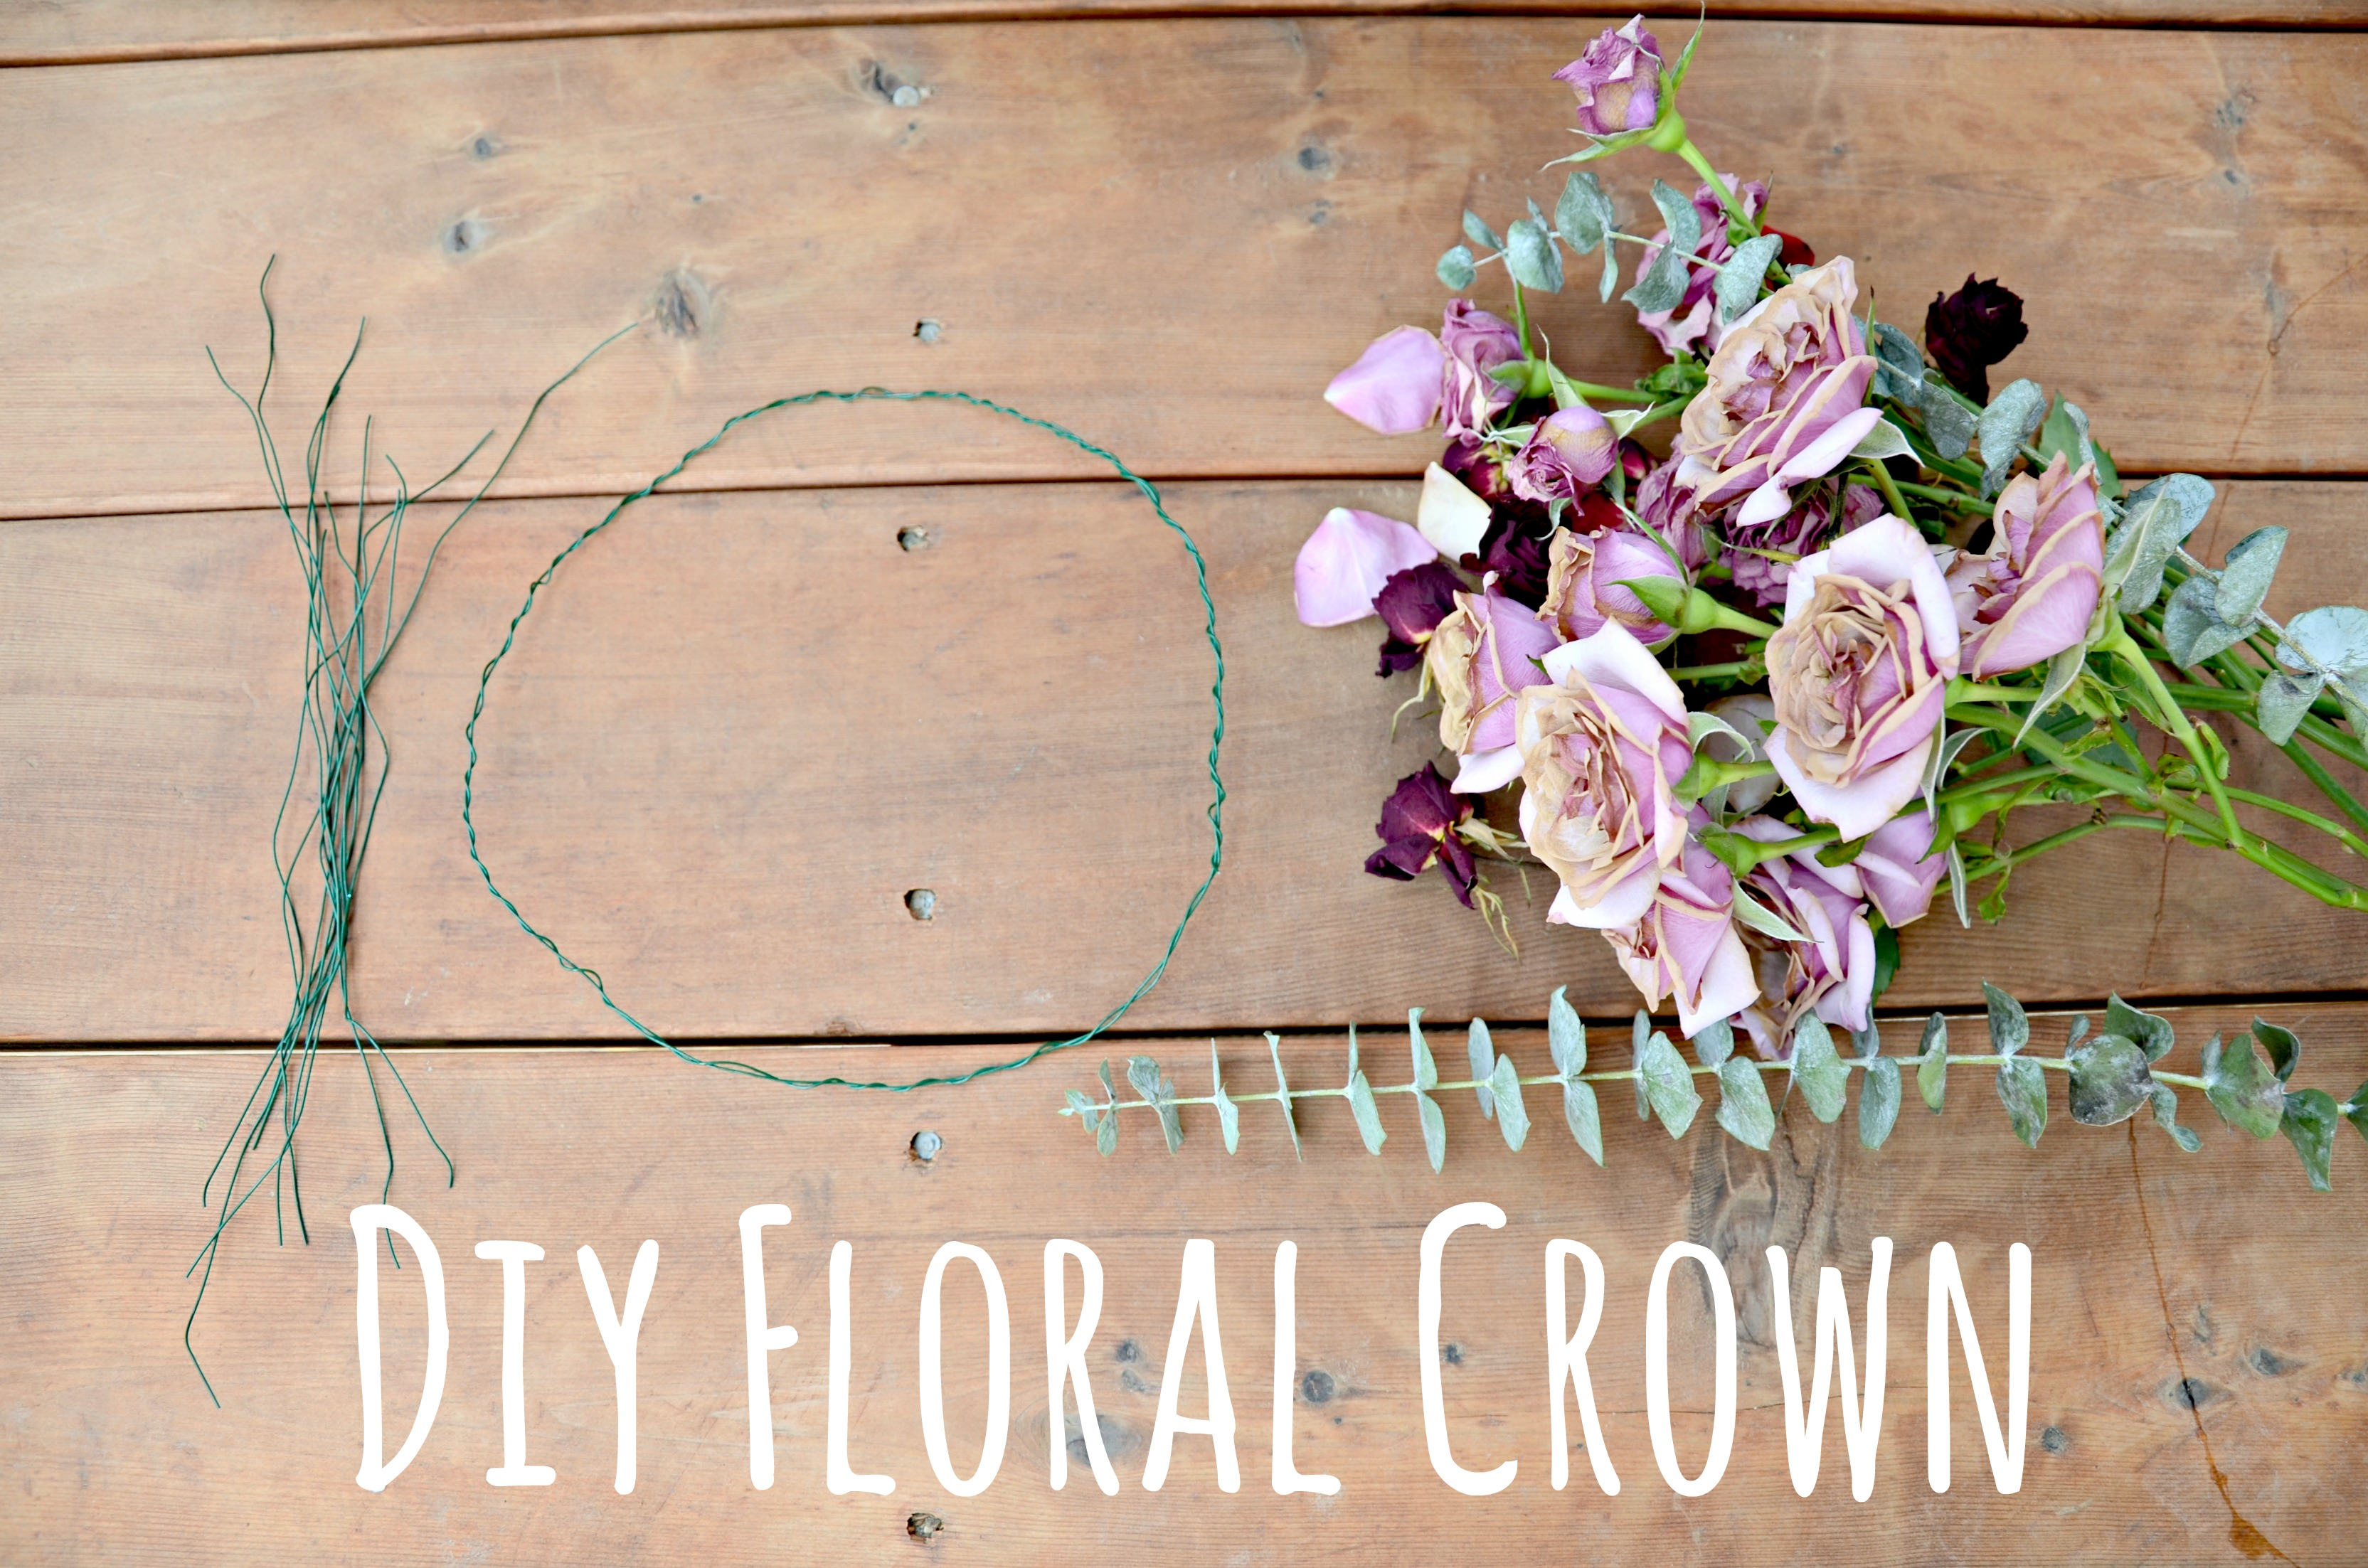 Diy floral crown hi lovely diy floral crown flower headpiece for coachella and festivals by hi lovely izmirmasajfo